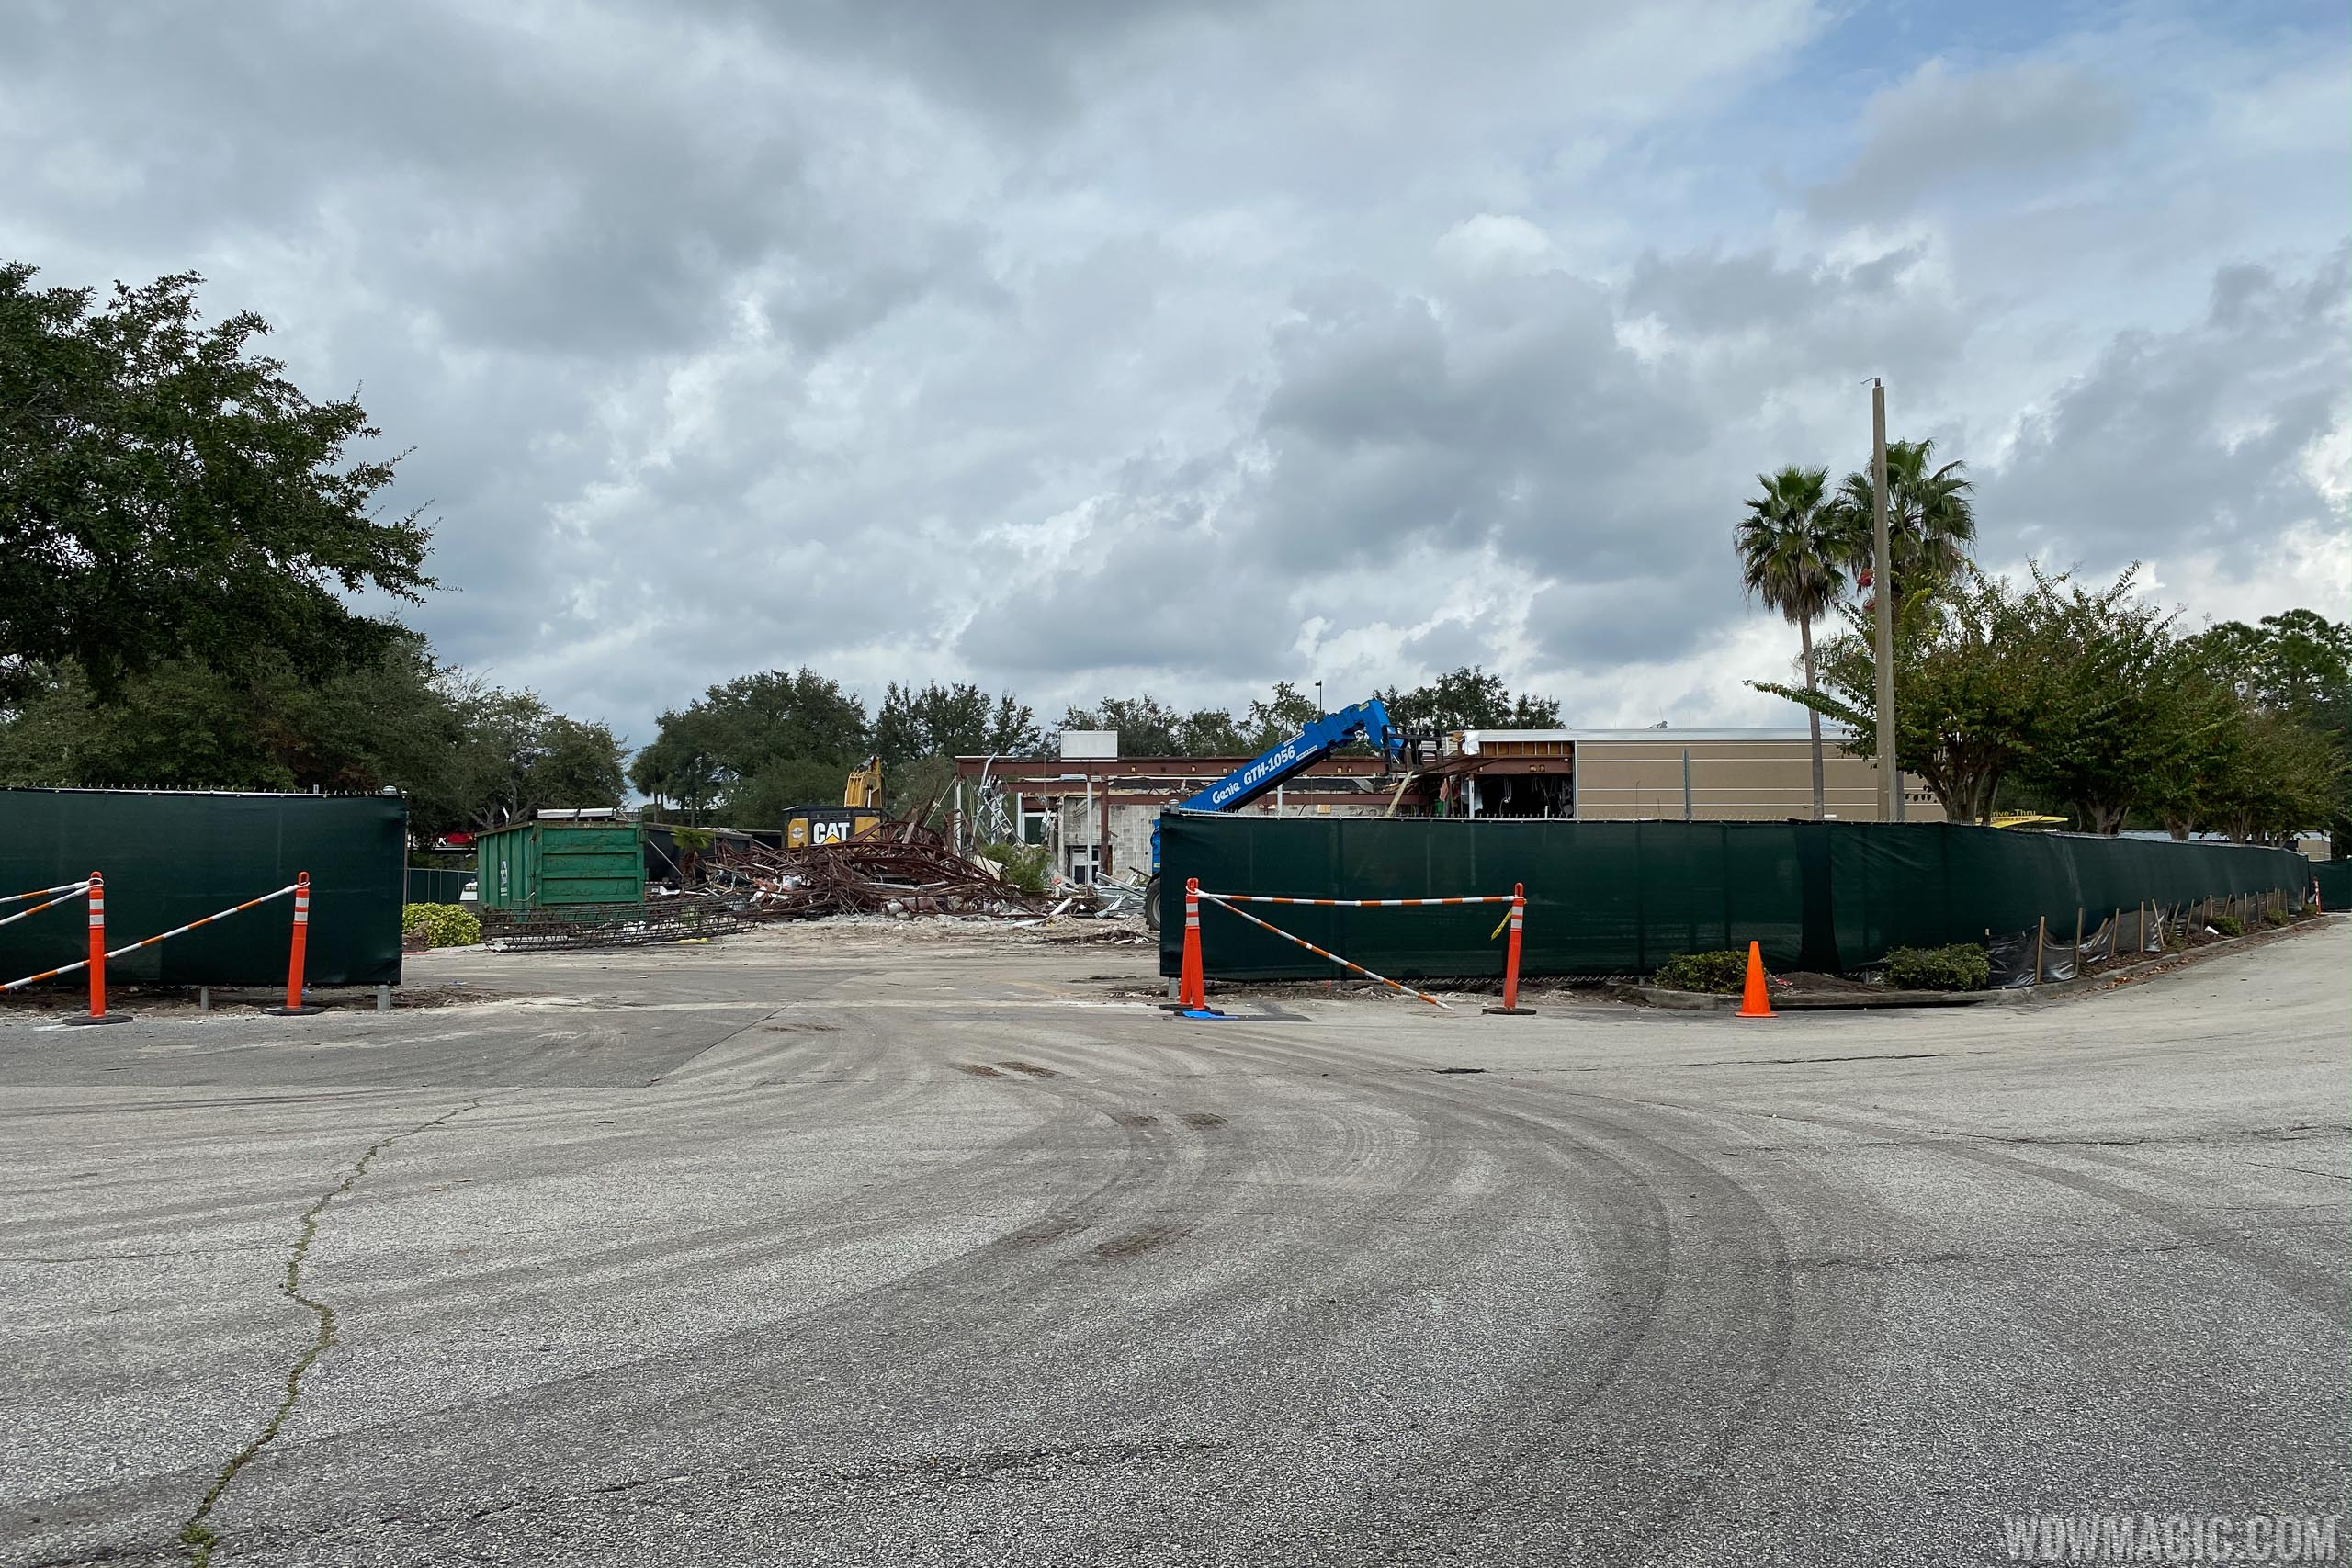 McDonald's at the All Star Resorts area demolition